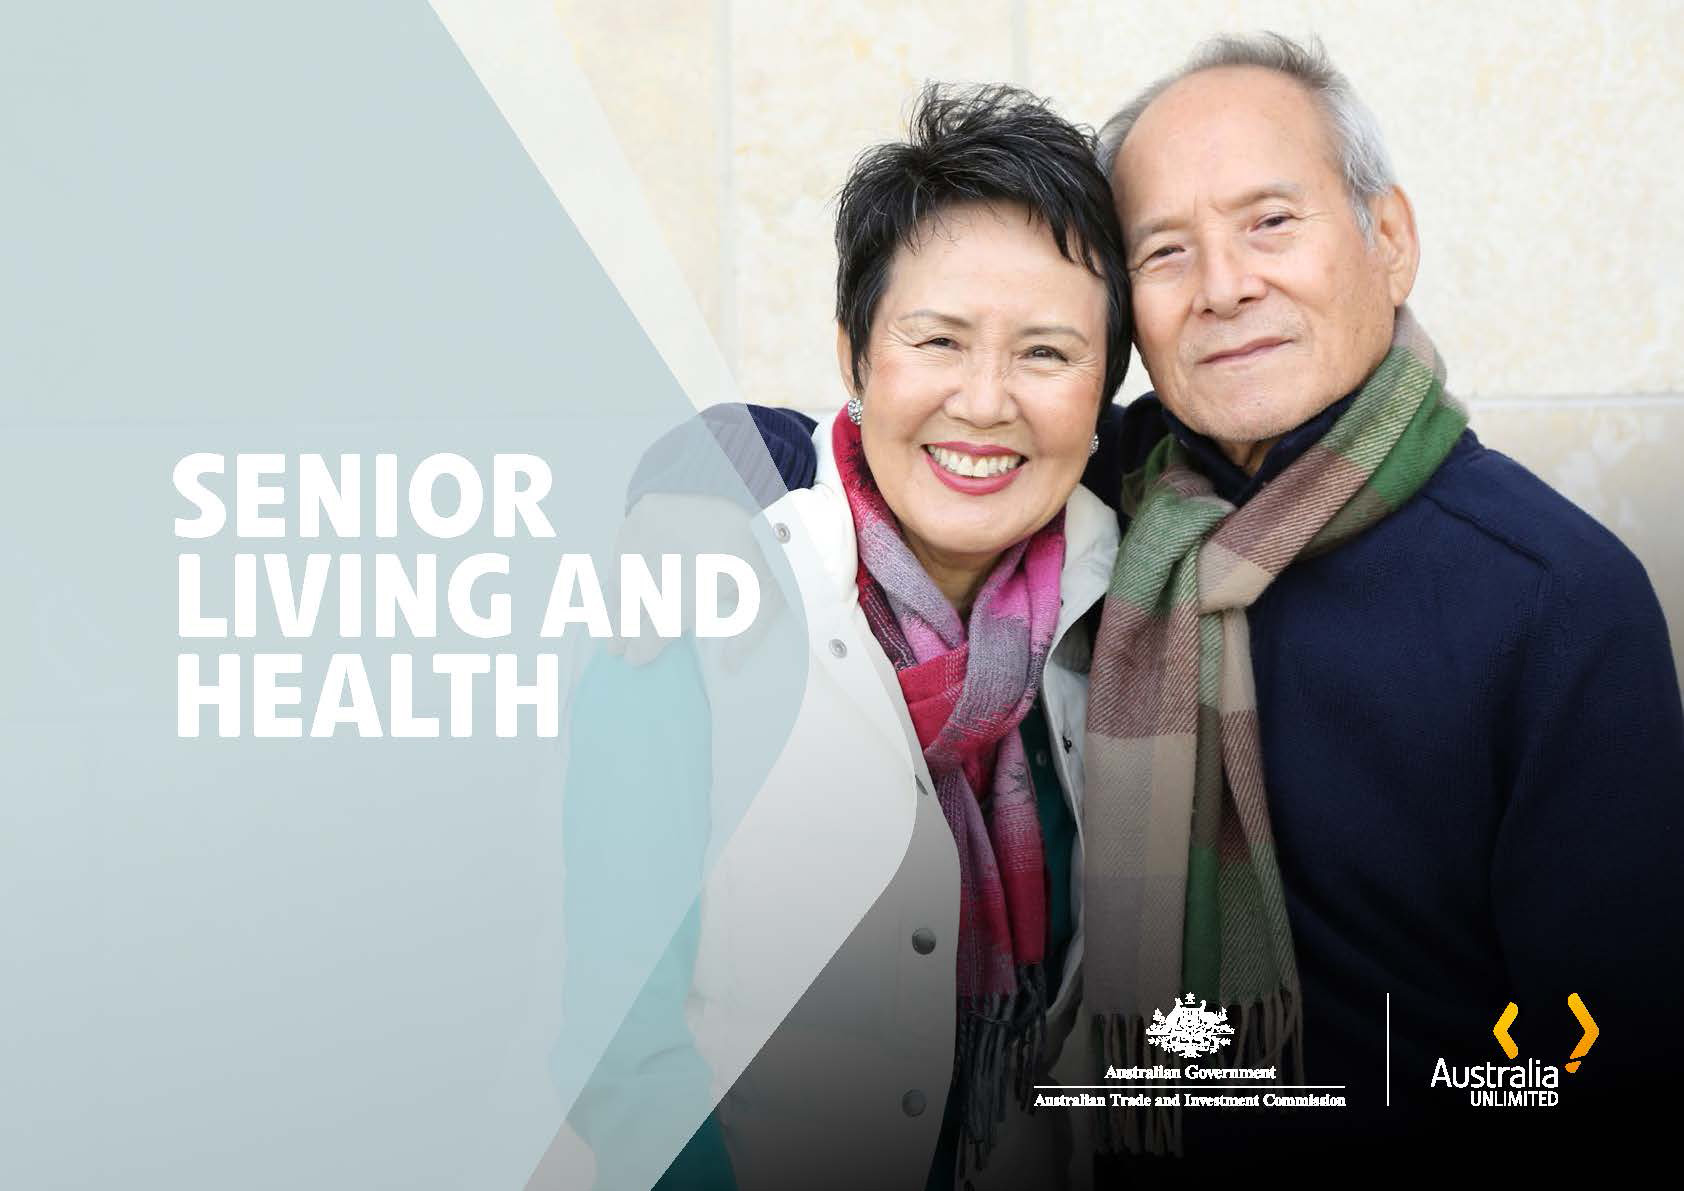 Senior living health report cover